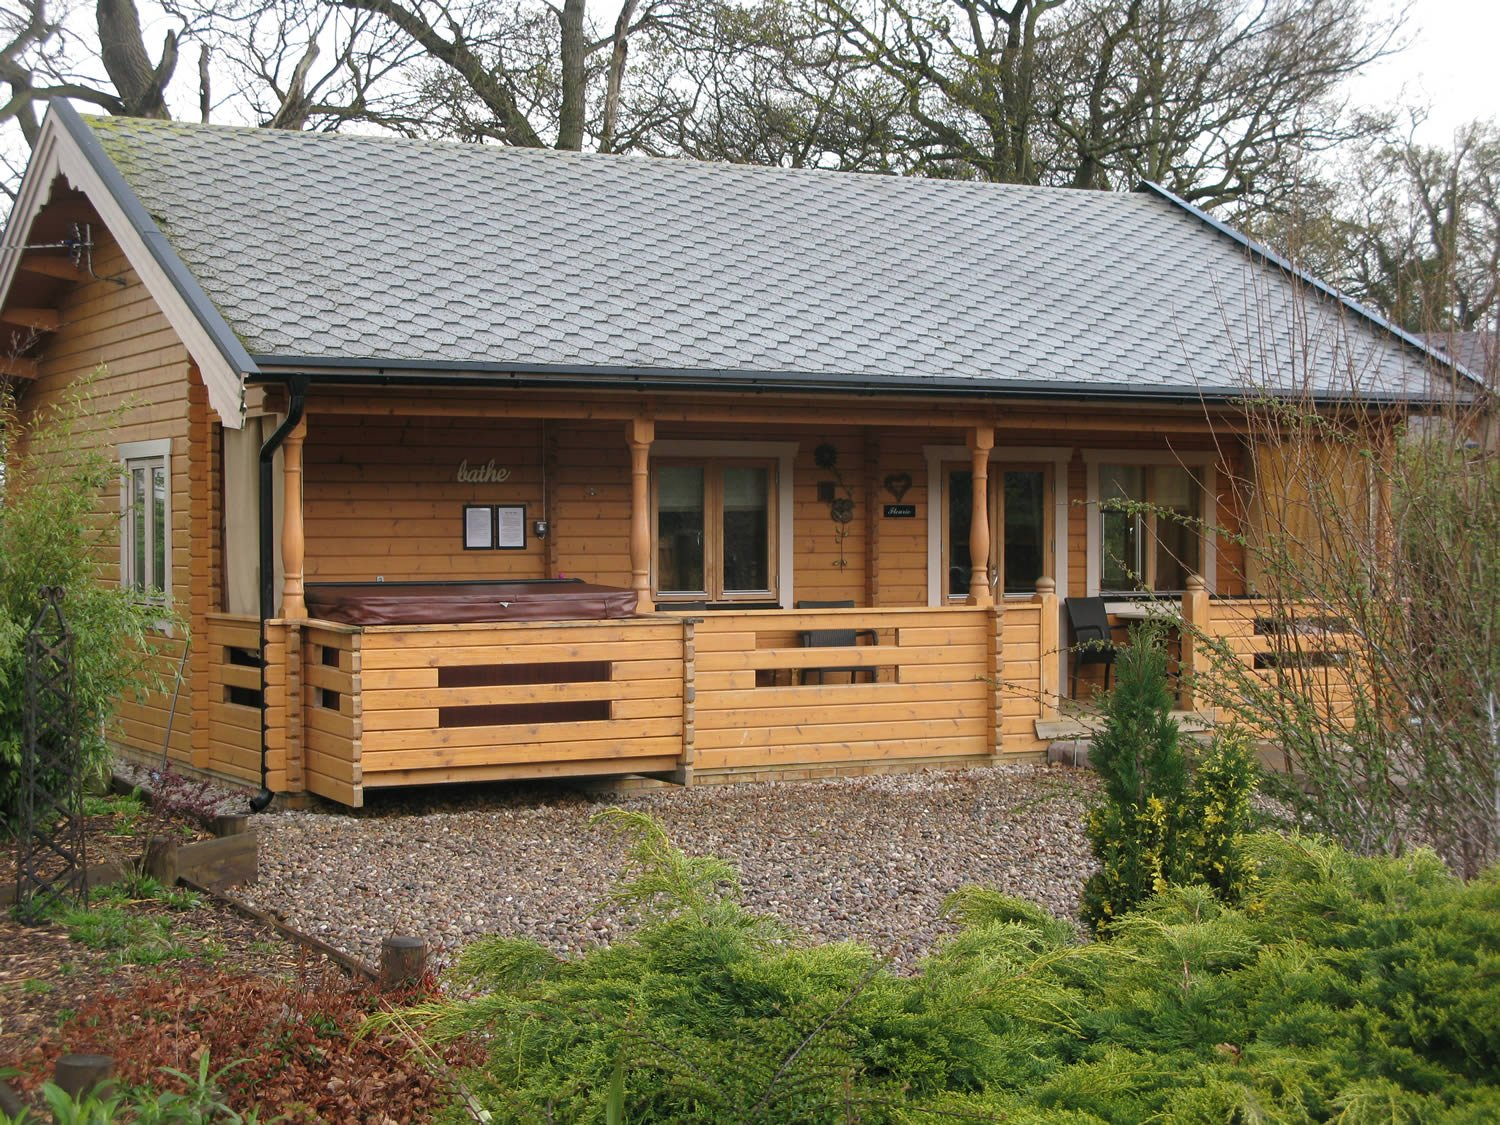 Great ayton log cabins my marketing journey for Log cabins for sale north yorkshire